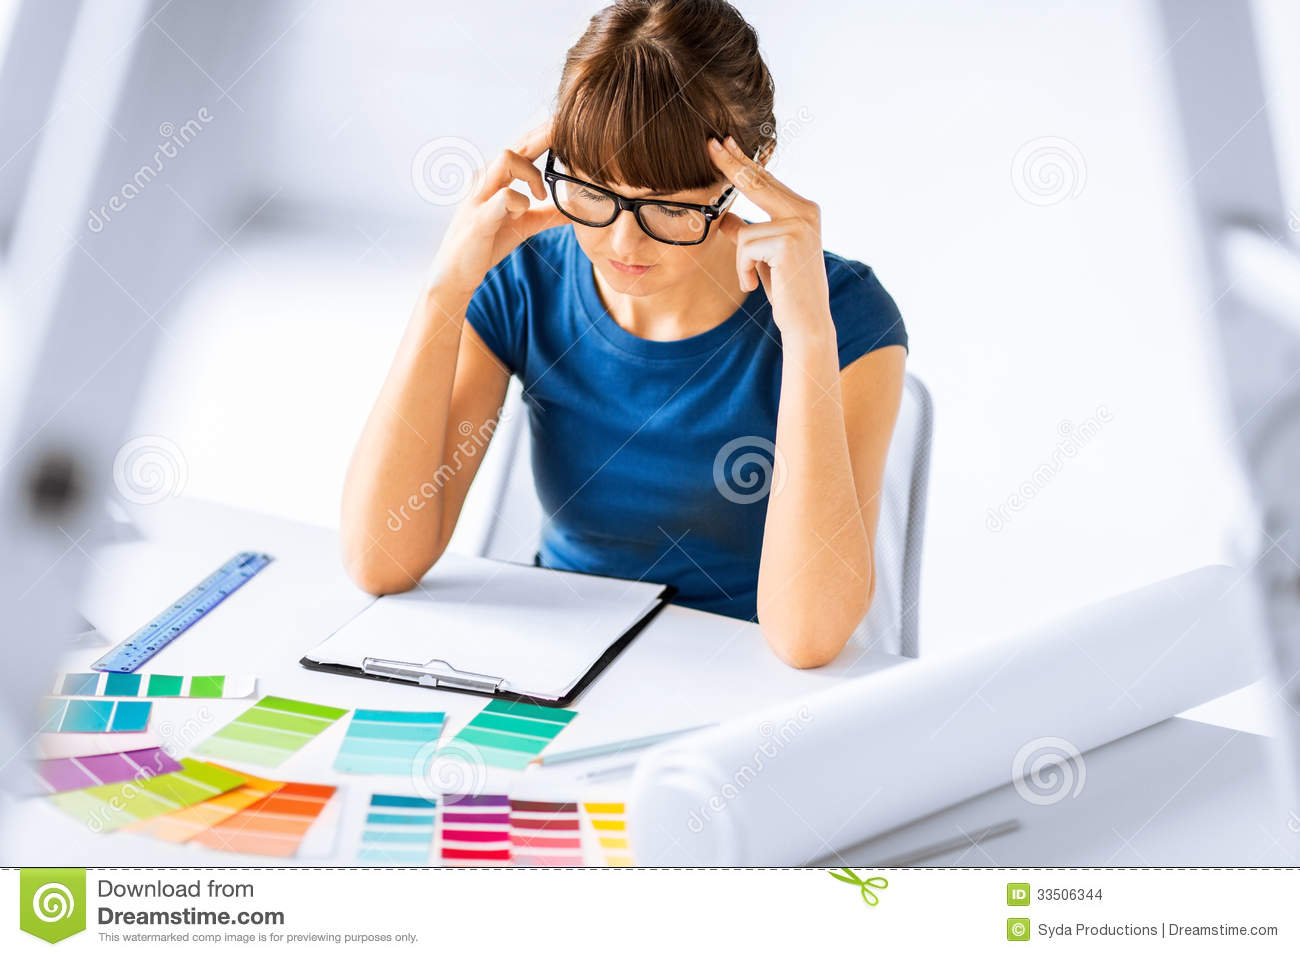 Stressed interior designer stock images image 33506344 Create a blueprint online